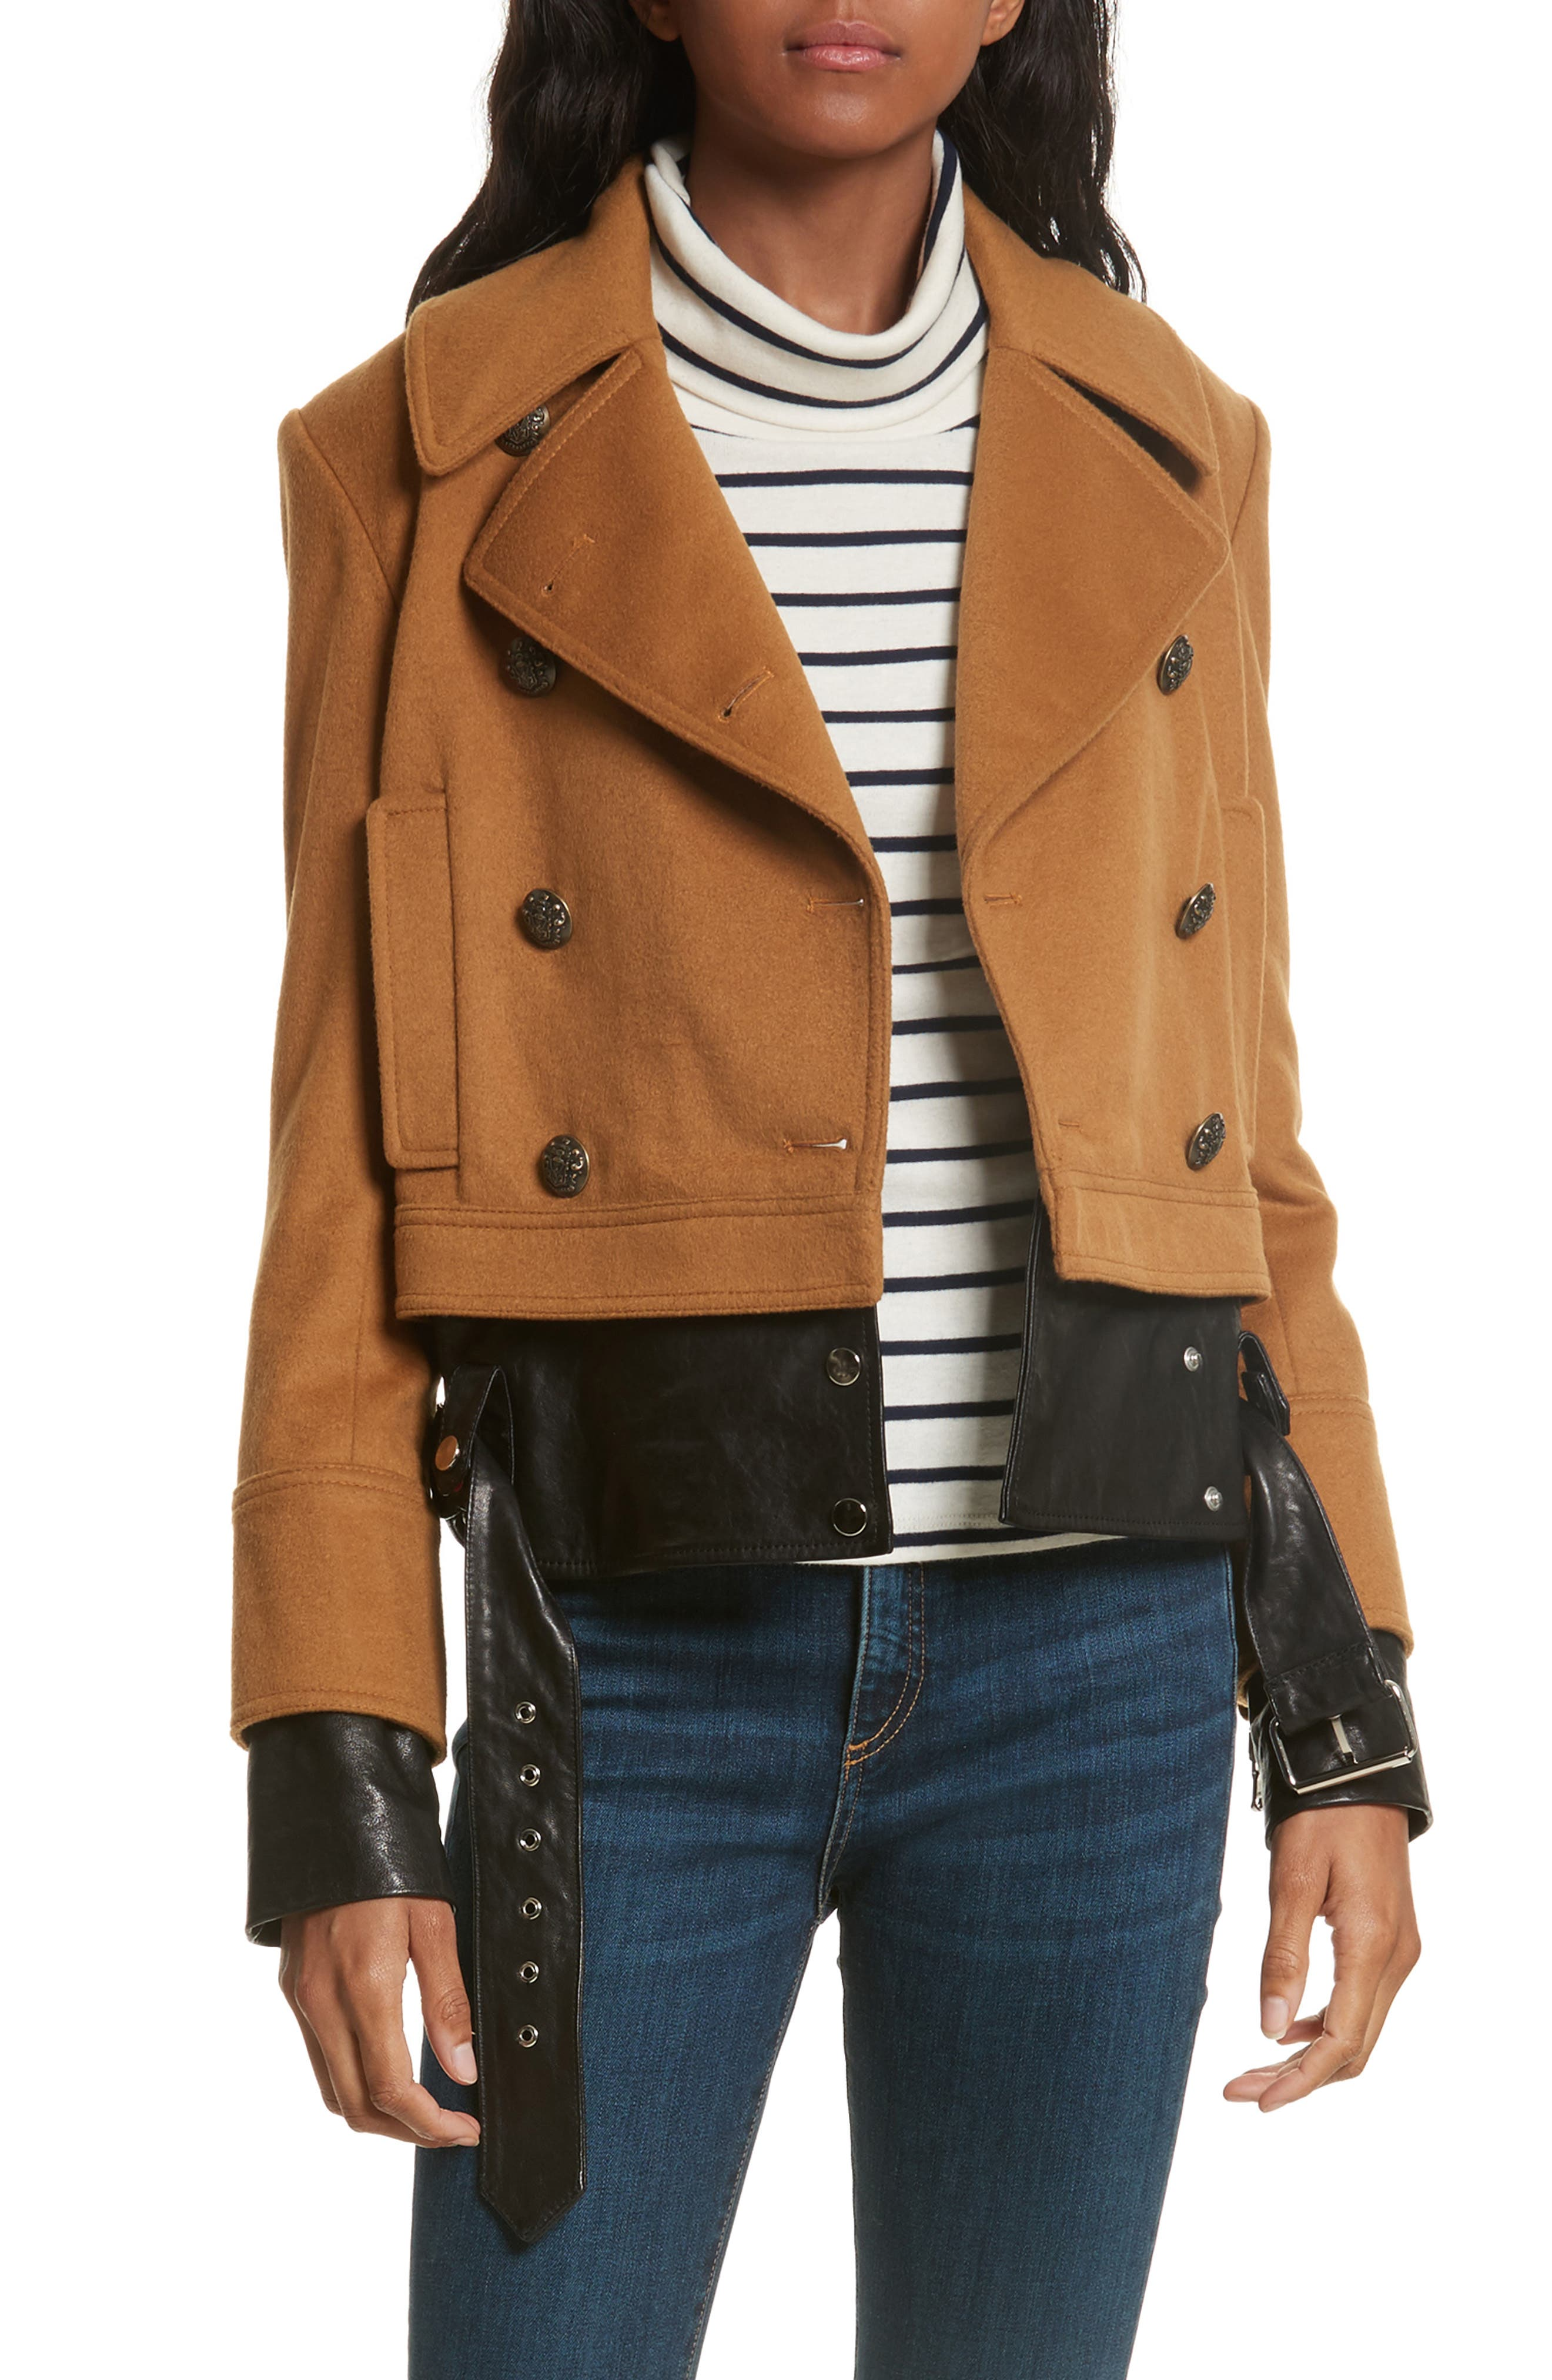 Yara Leather Hem Peacoat,                             Main thumbnail 1, color,                             245